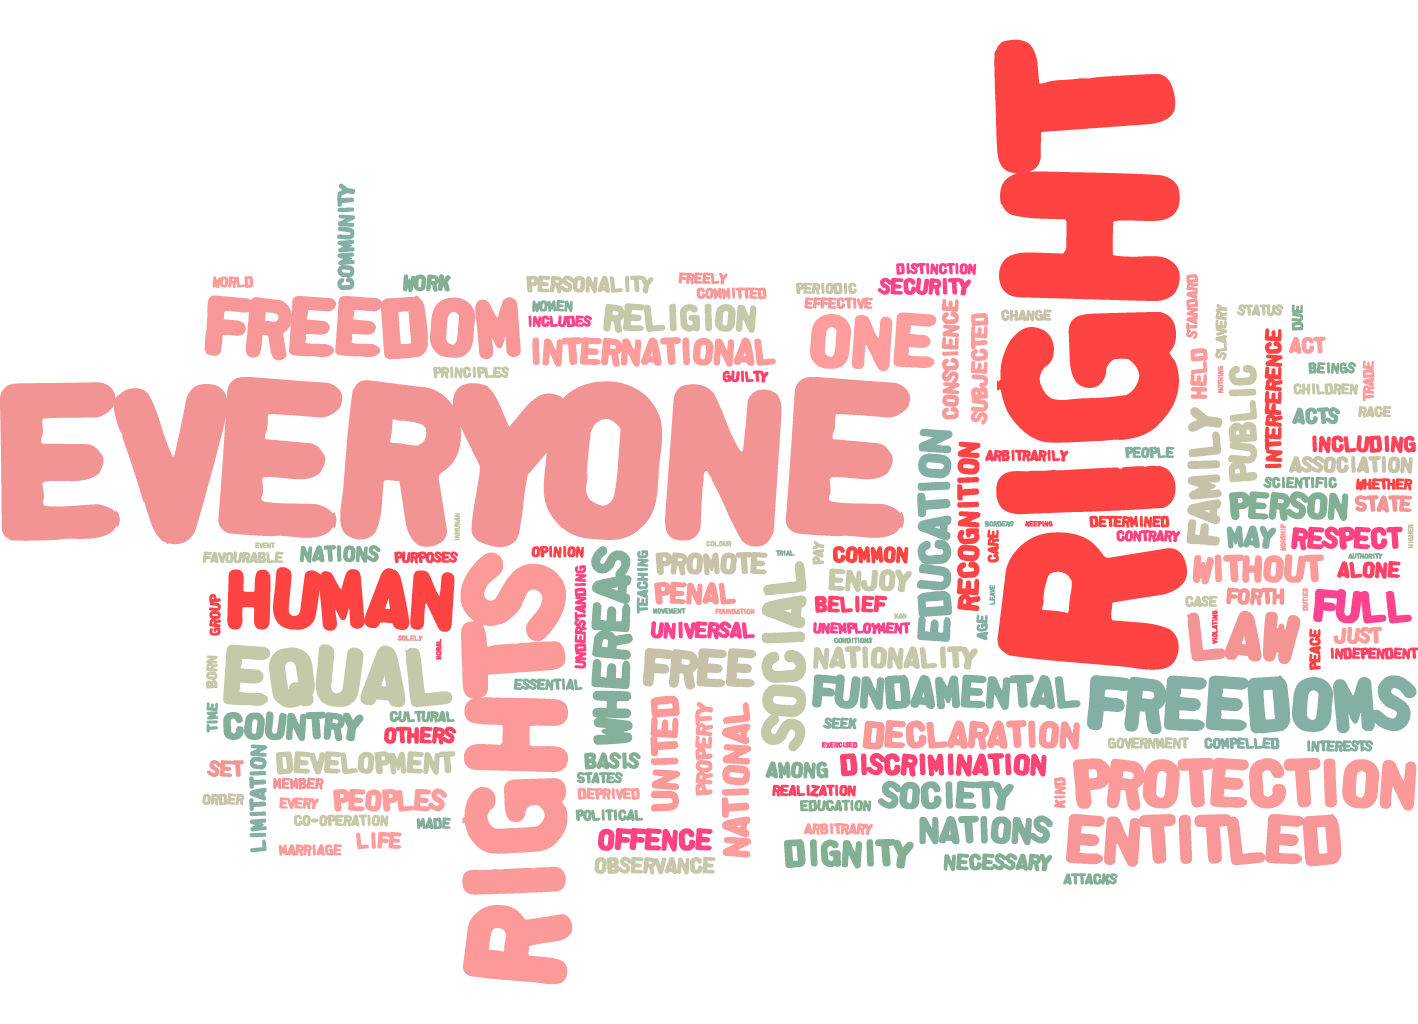 2016 Human Rights Day Image Wallpaper Cover Photo WhatsApp Dp 1418x1024